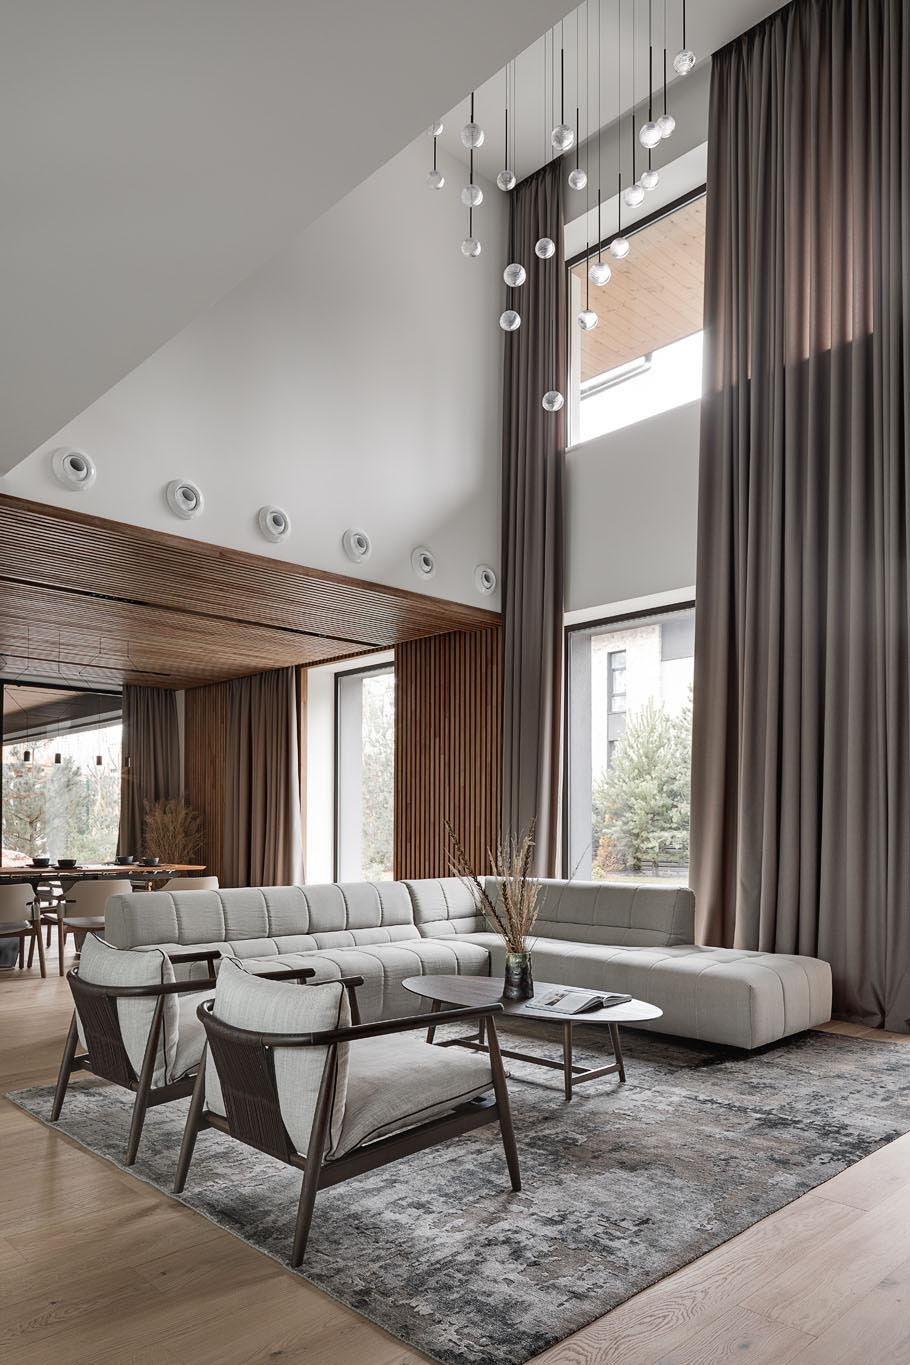 In this modern living room, there's a double height ceiling with a sculptural light installation.